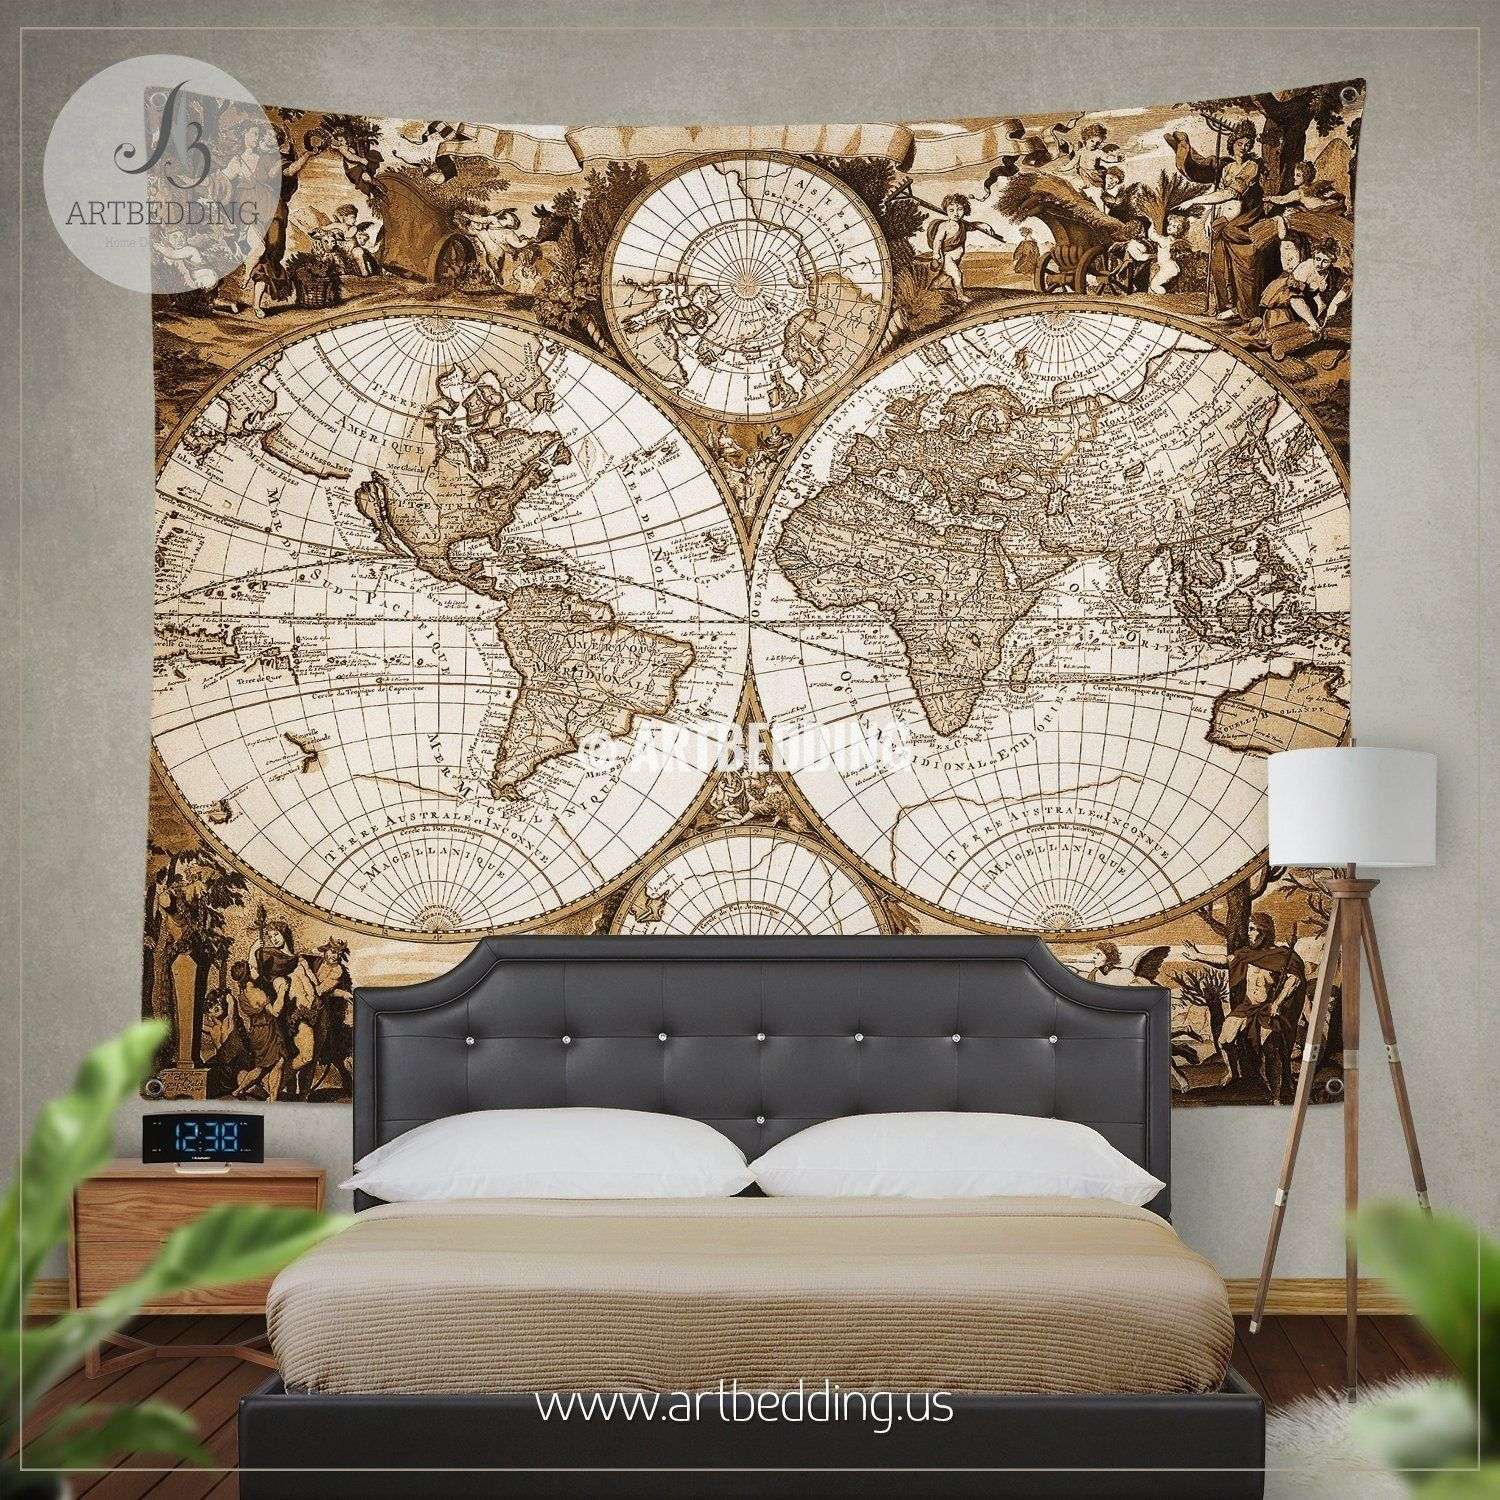 Antique world map wall tapestry ancient world map wall hanging antique world map wall tapestry ancient world map wall hanging vintage old map wall decor steampunk wall art print gumiabroncs Image collections